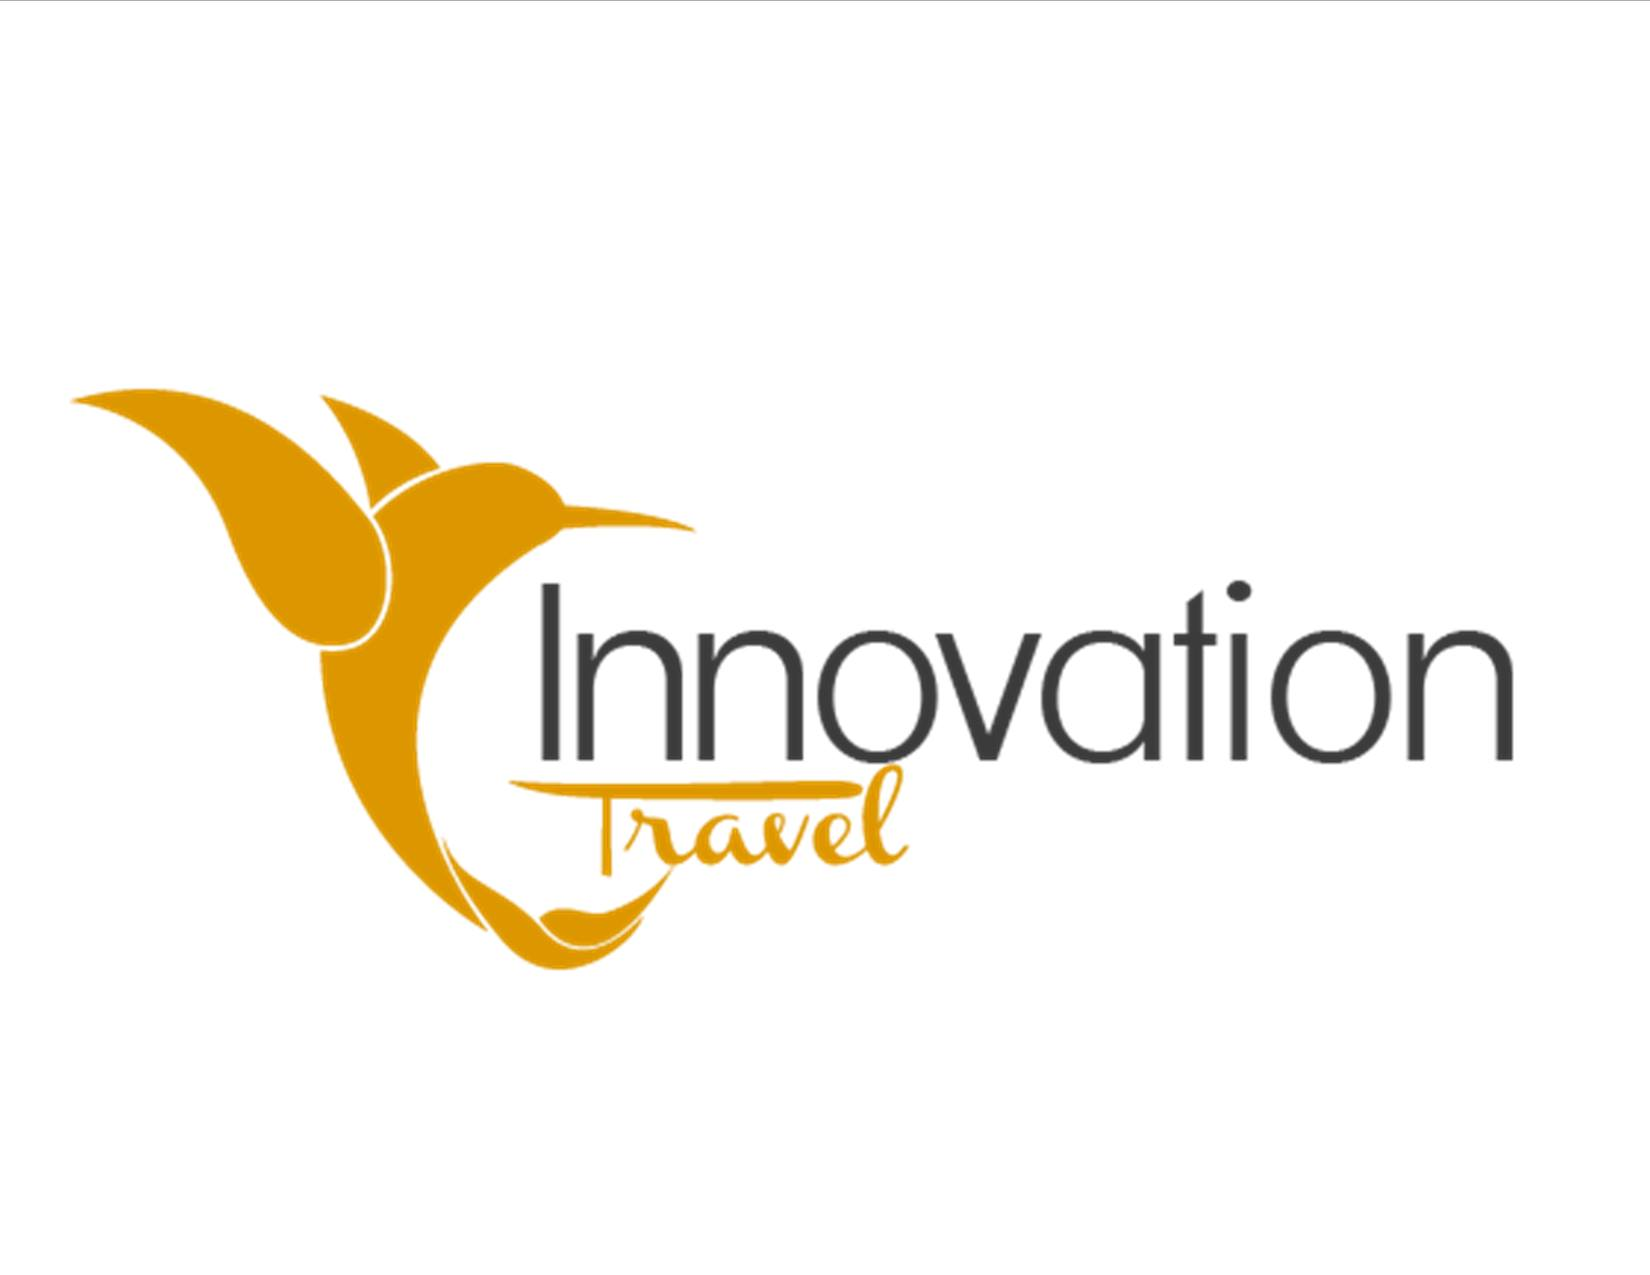 INNOVATION TRAVEL